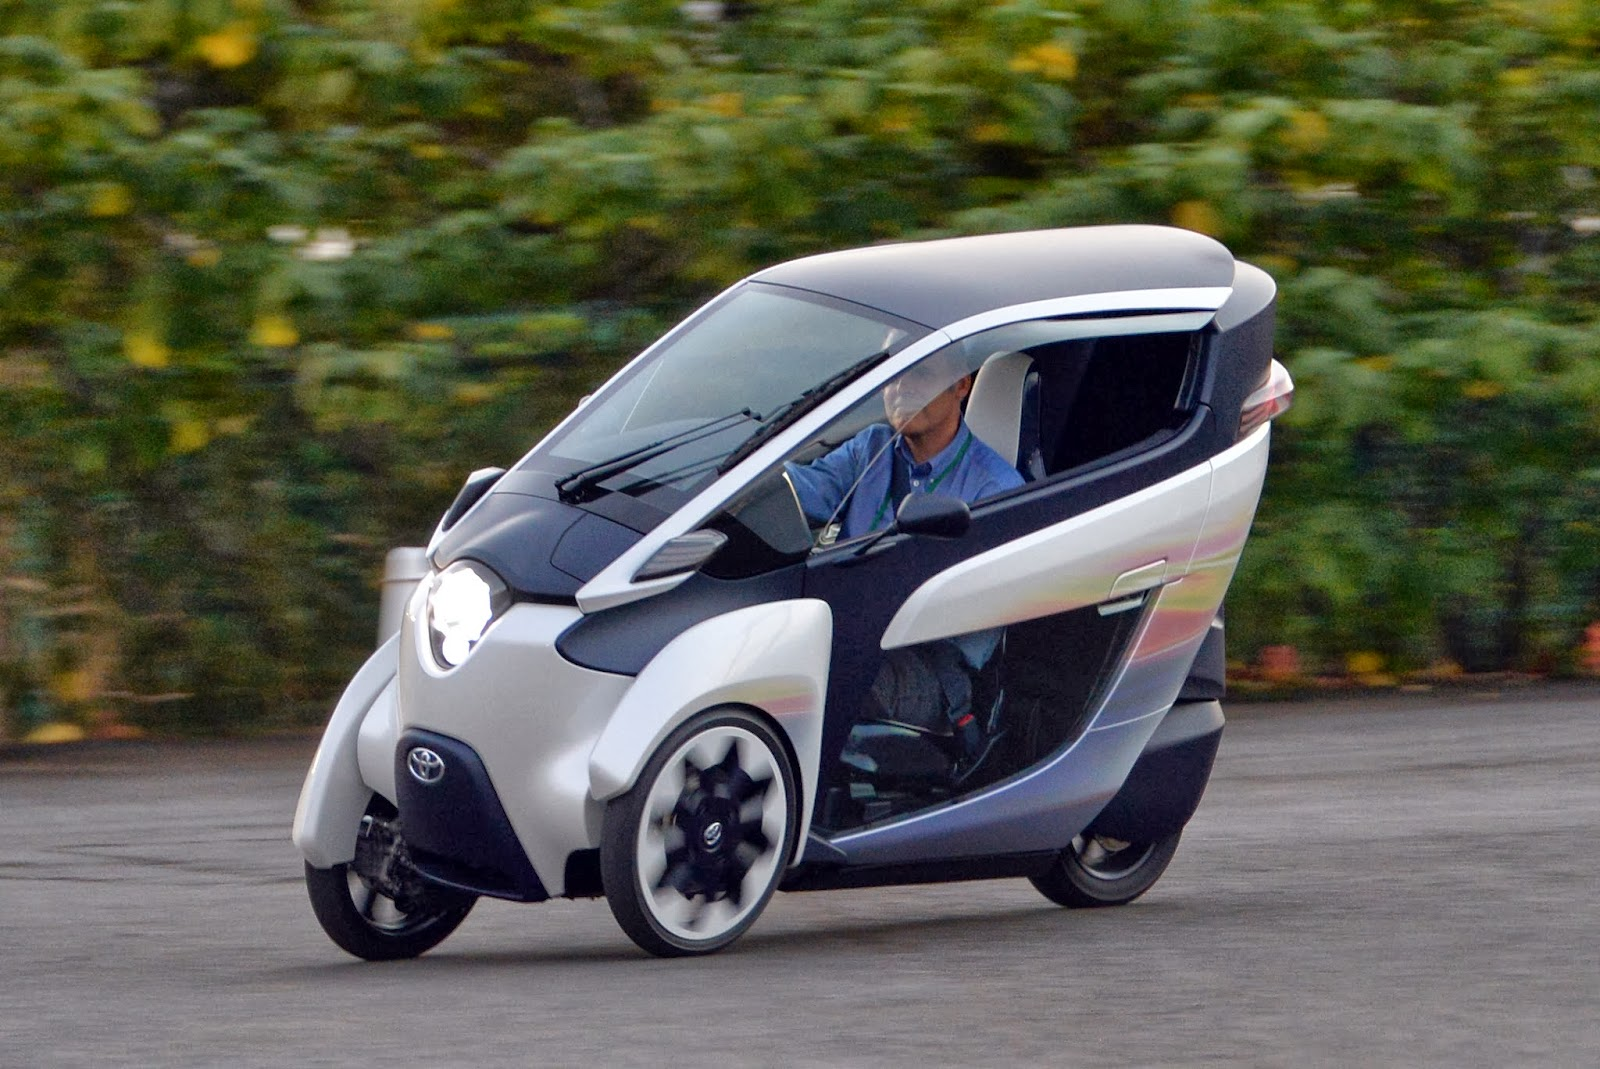 Auto, Bicycle, Cycling, Electric bike, Electronic, Industry, Japan, Japanese auto giant Toyota Motor, Market, Motorbike, Technology, Three-wheeler, Tokyo, Toyota, Trike i-Road,